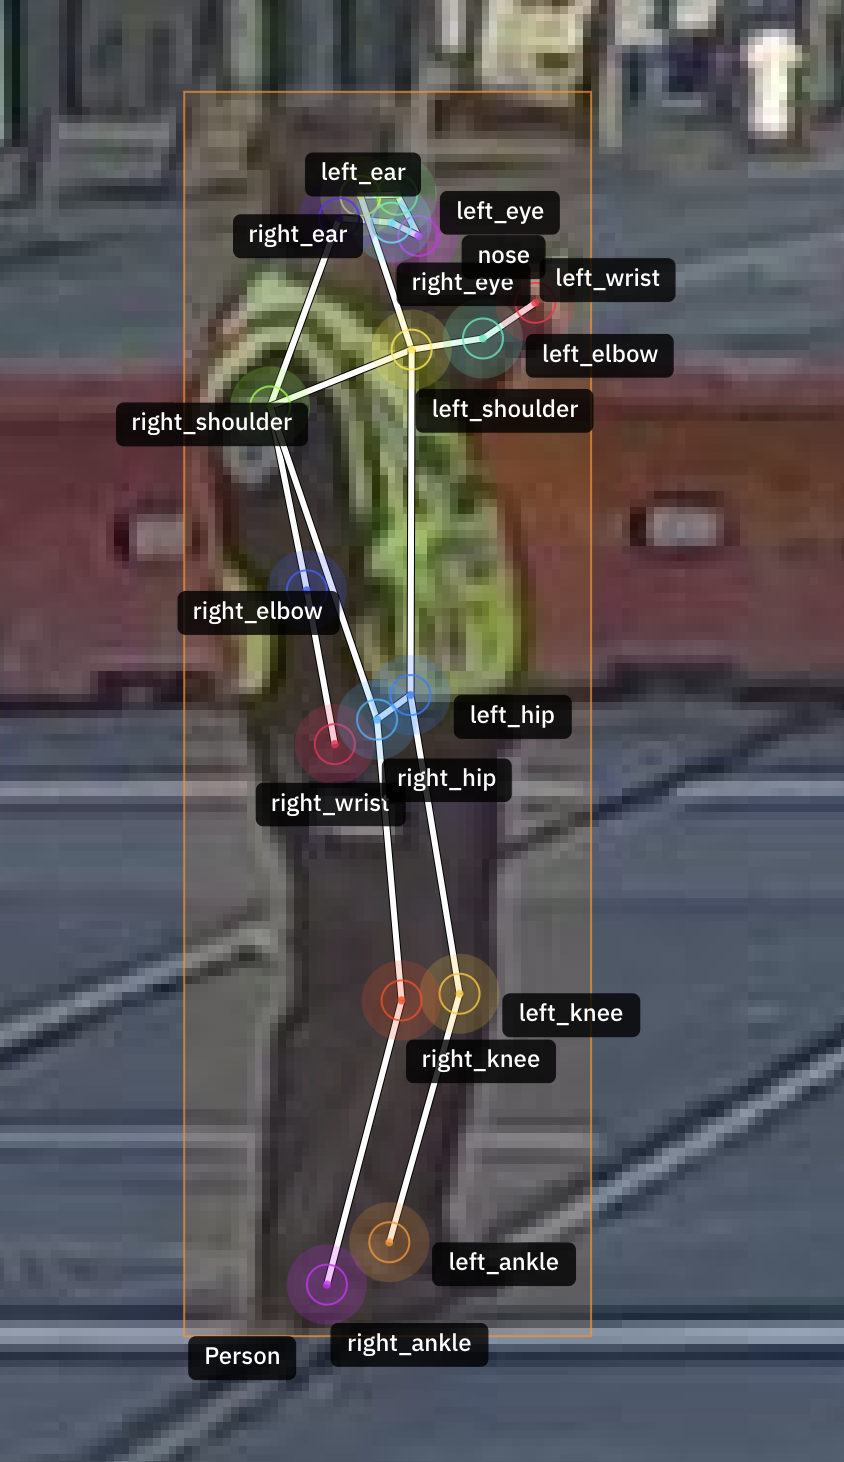 Visualization of keypoint connections